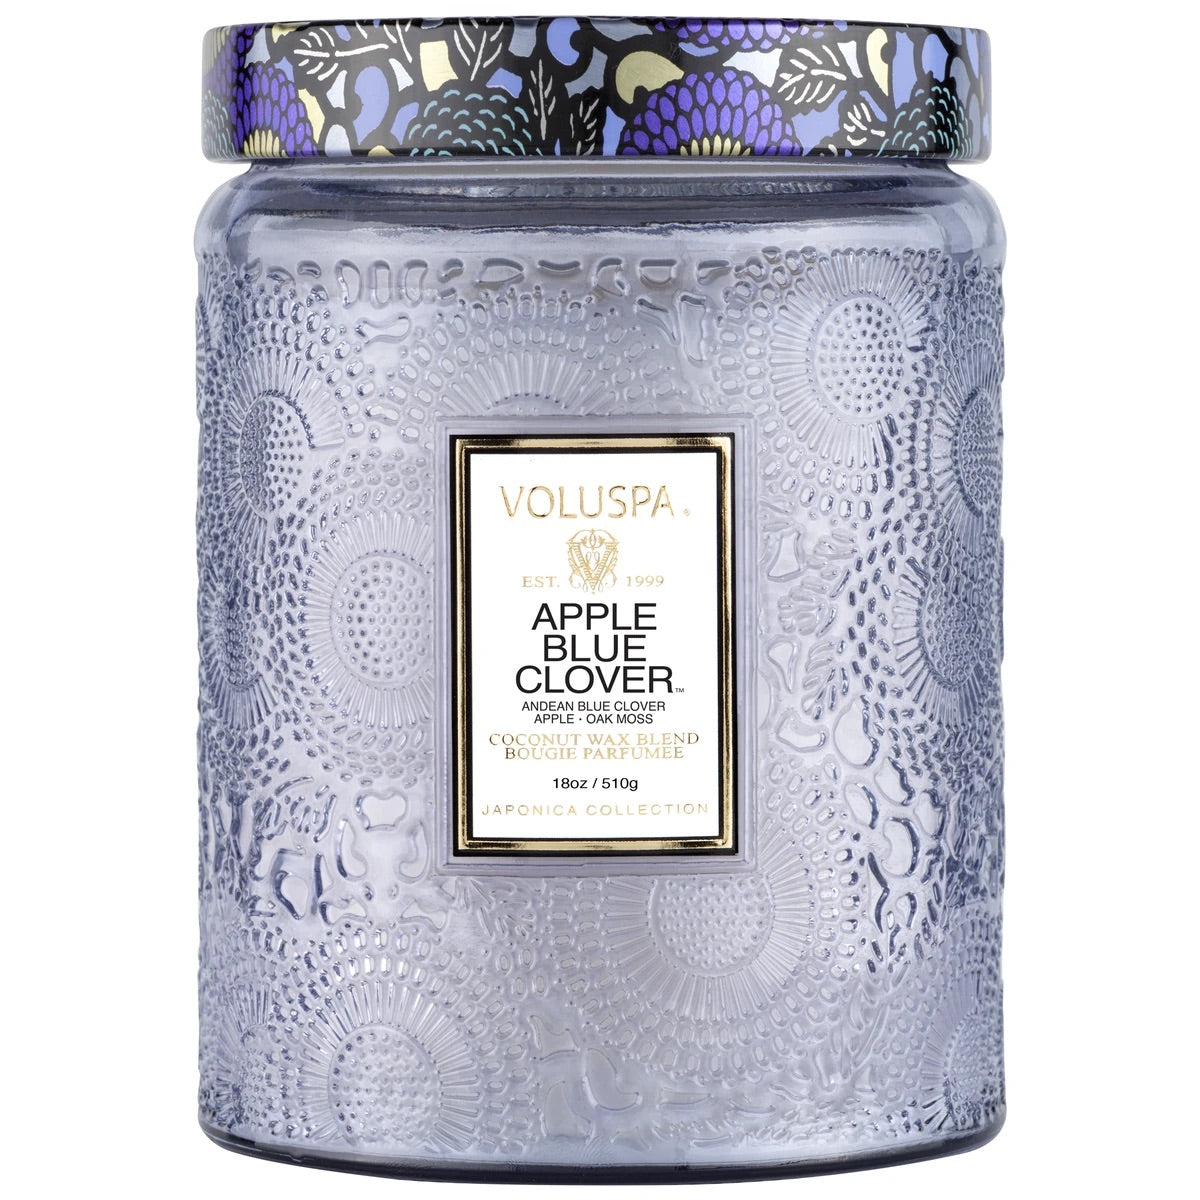 Apple Blue Clover | Large Jar Glass Candle